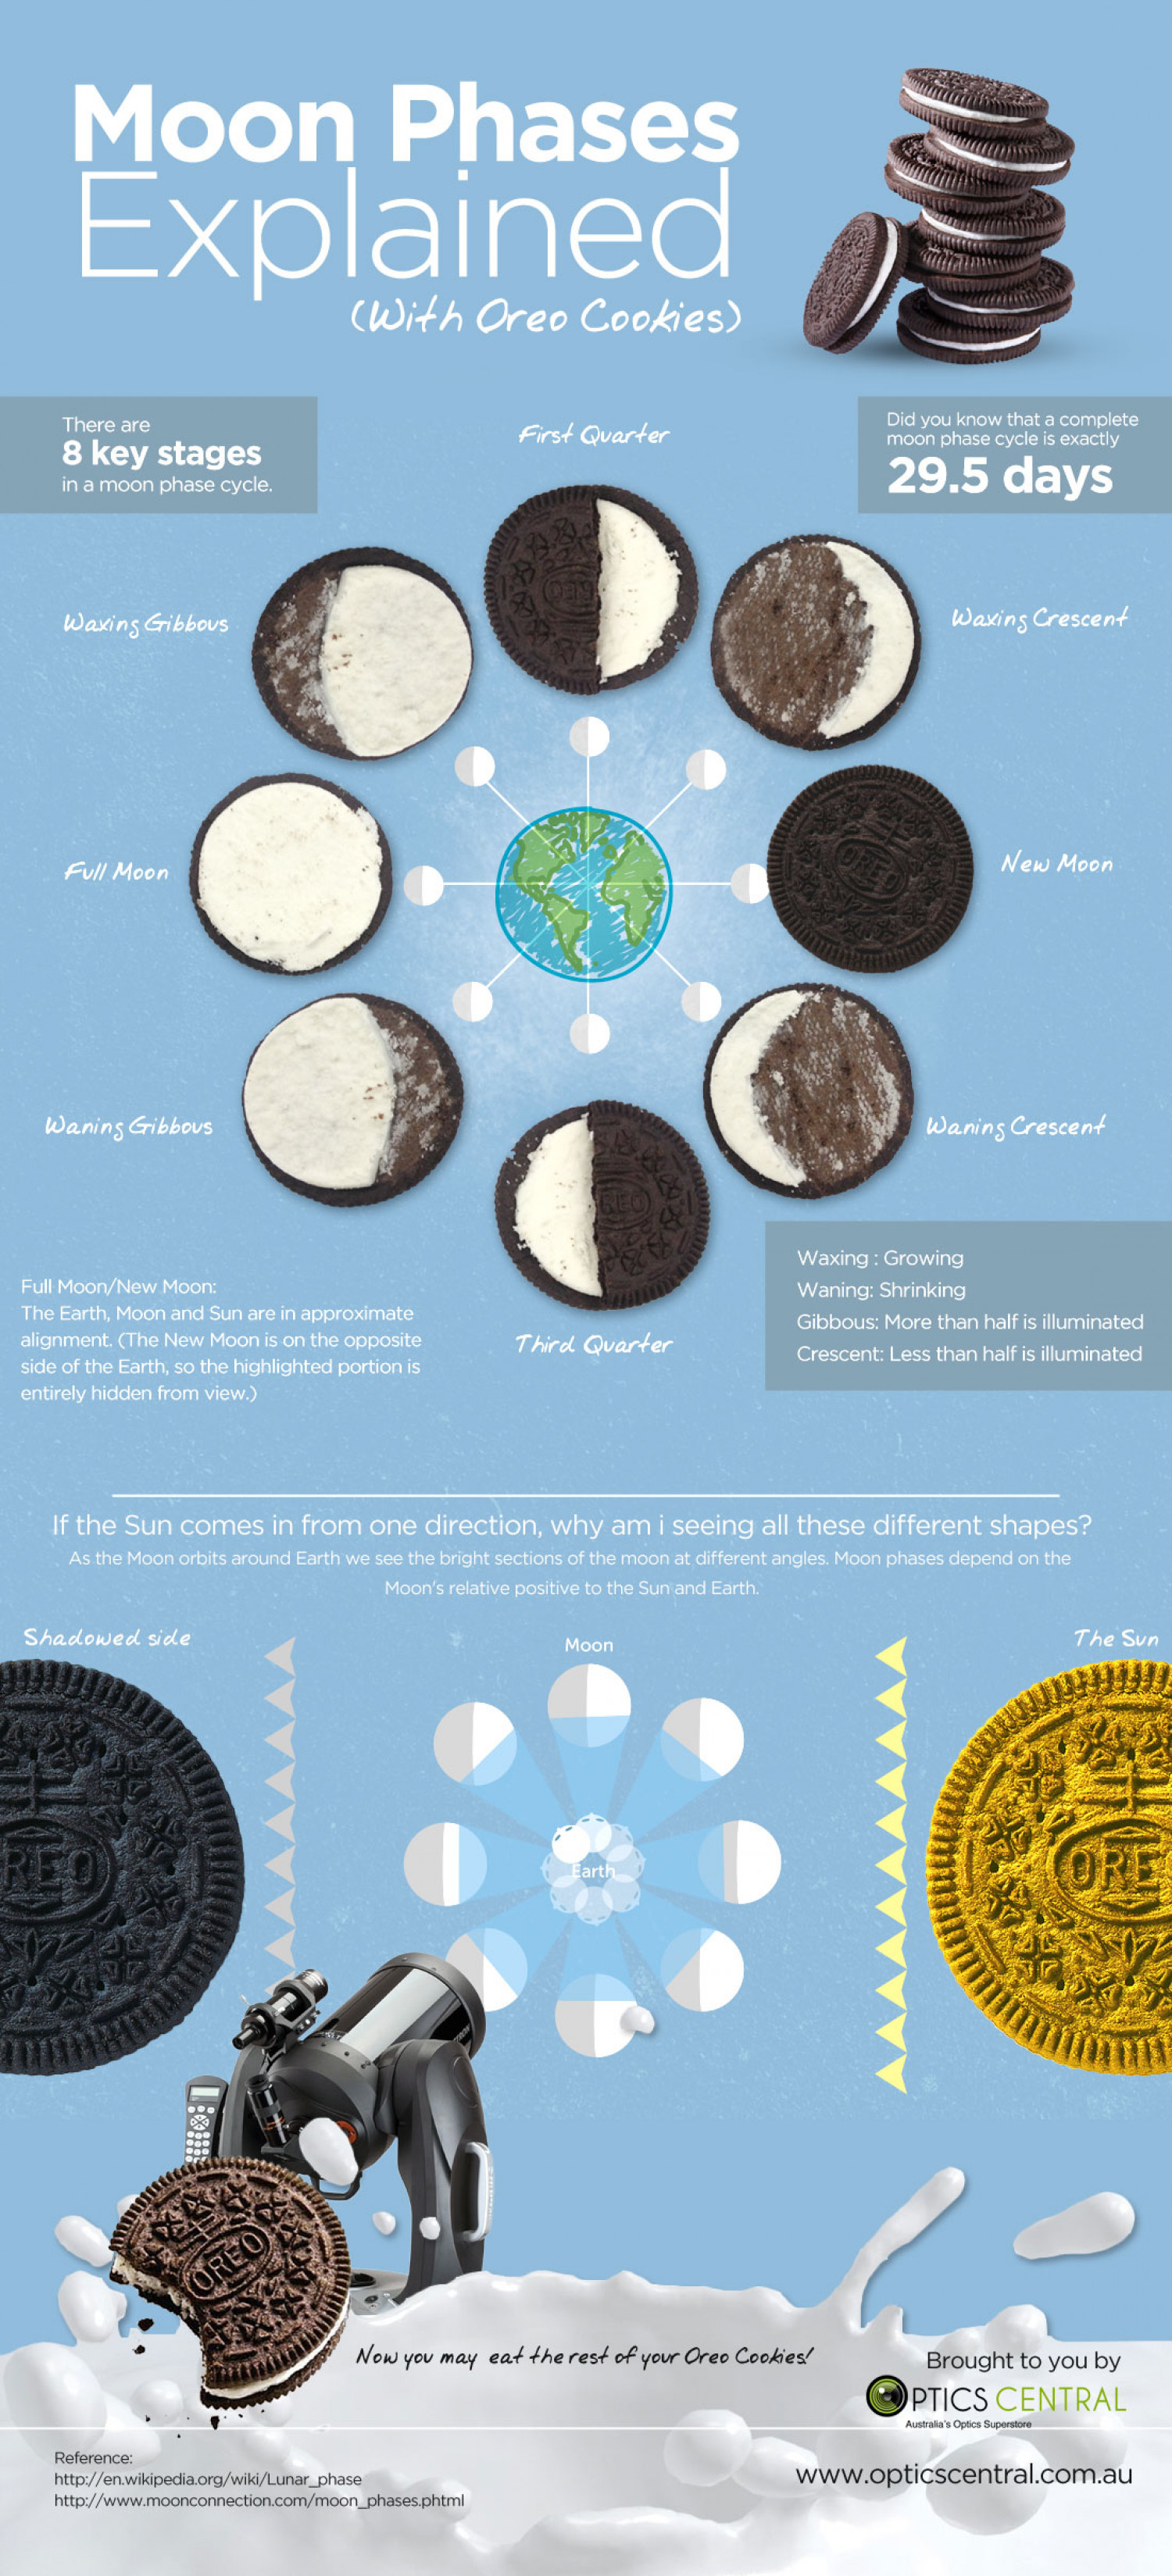 Moon Phases Explained With Oreos